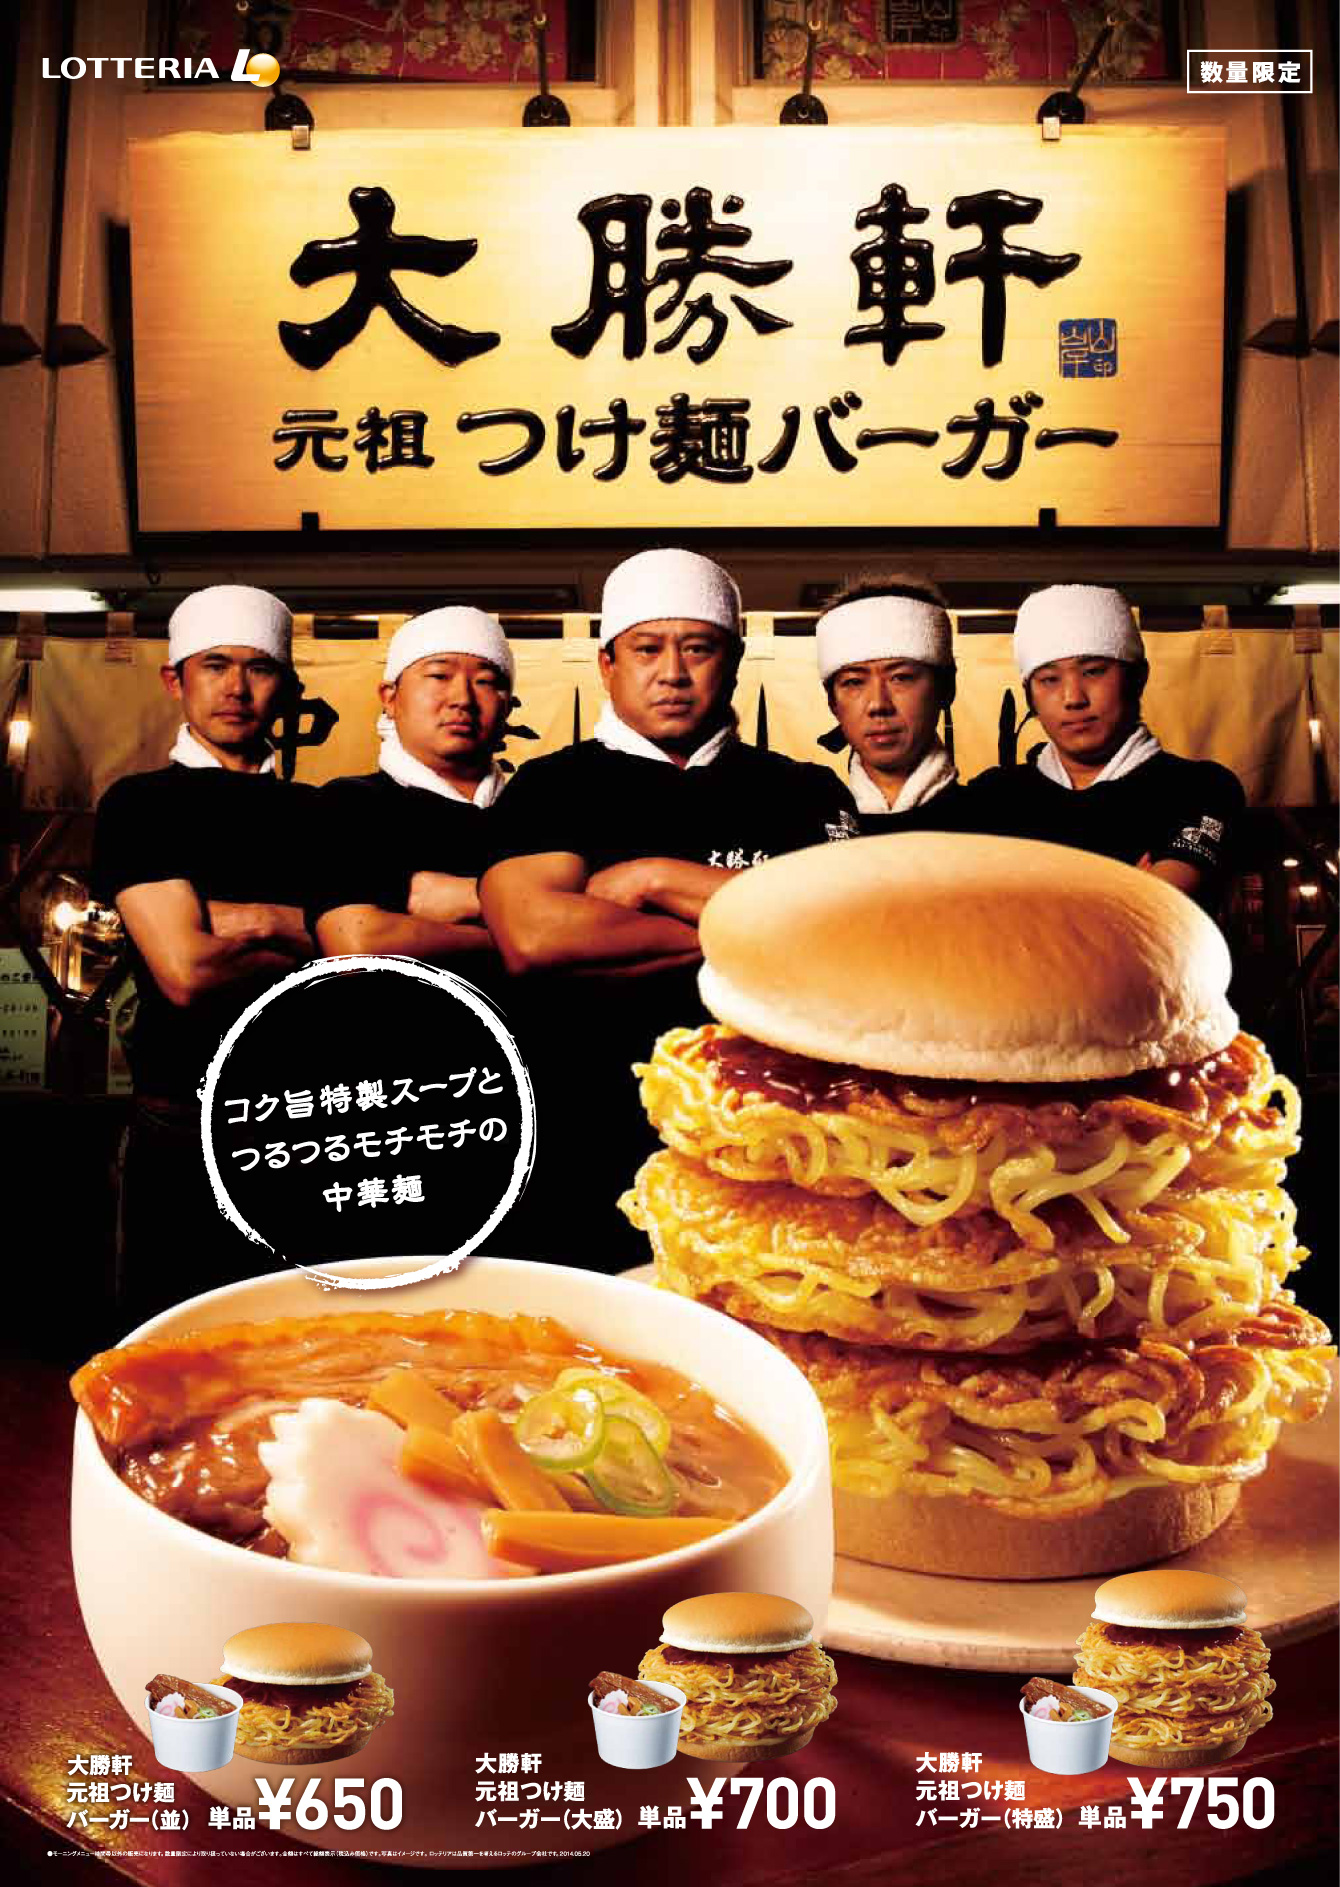 Japan's Lotteria Tsukumen Ramen Burger